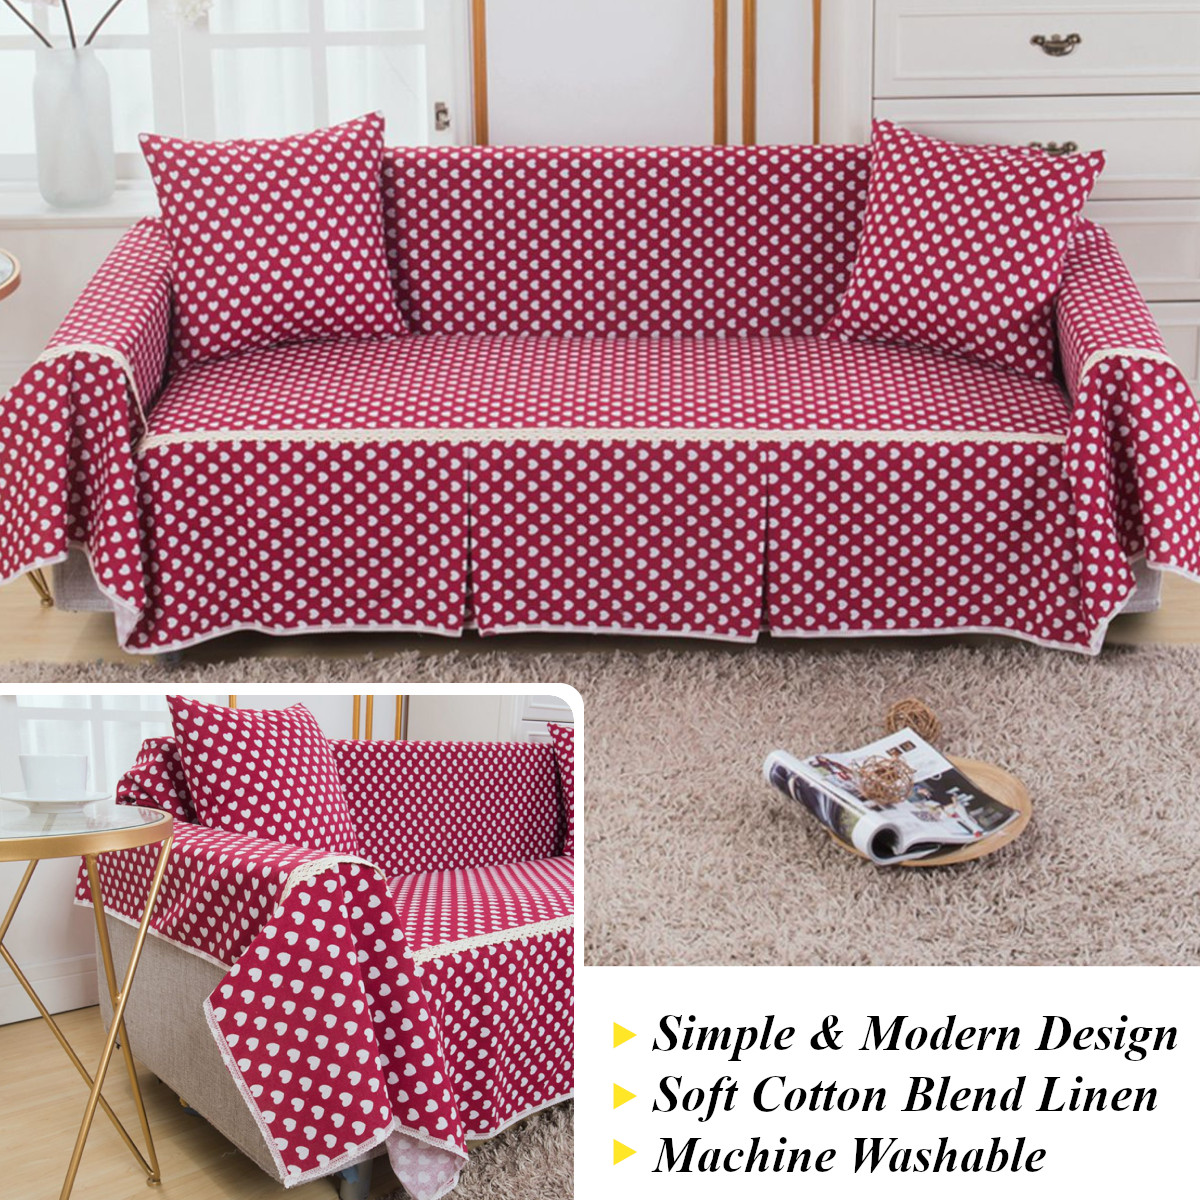 Sofa Covers Couch Slipcover Cotton Blend 1-4 Seat Pet Dog Sofa Cover  Protector